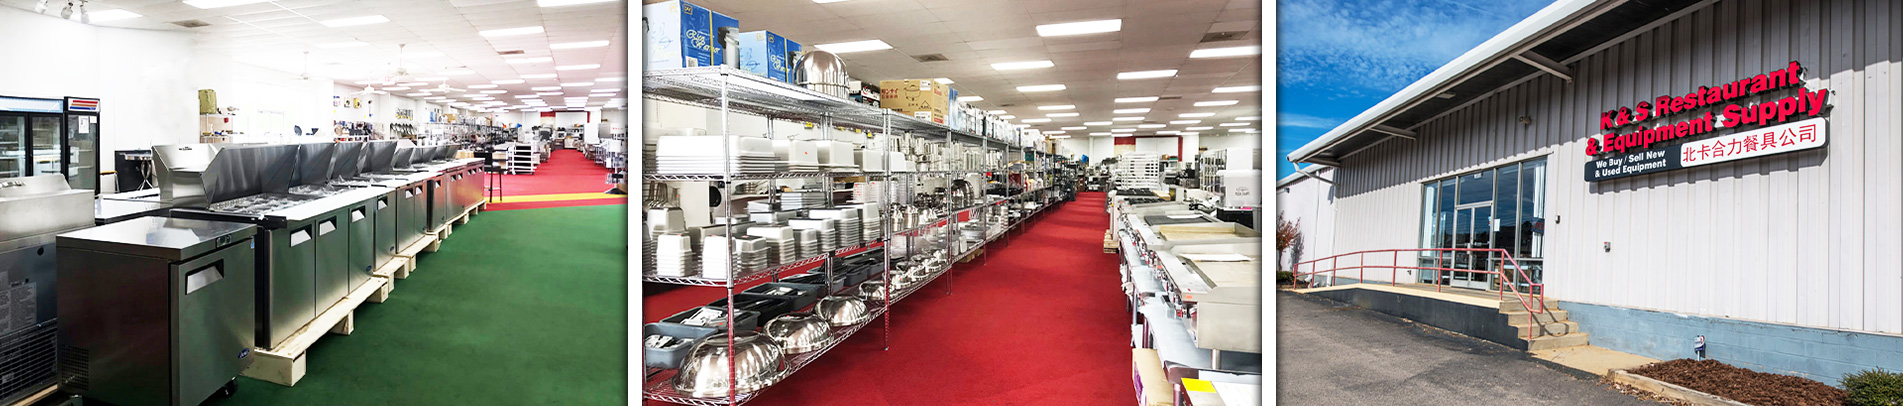 K&S Restaurant Supply showroom full of prep tables, kitchenware and an image of the exterior